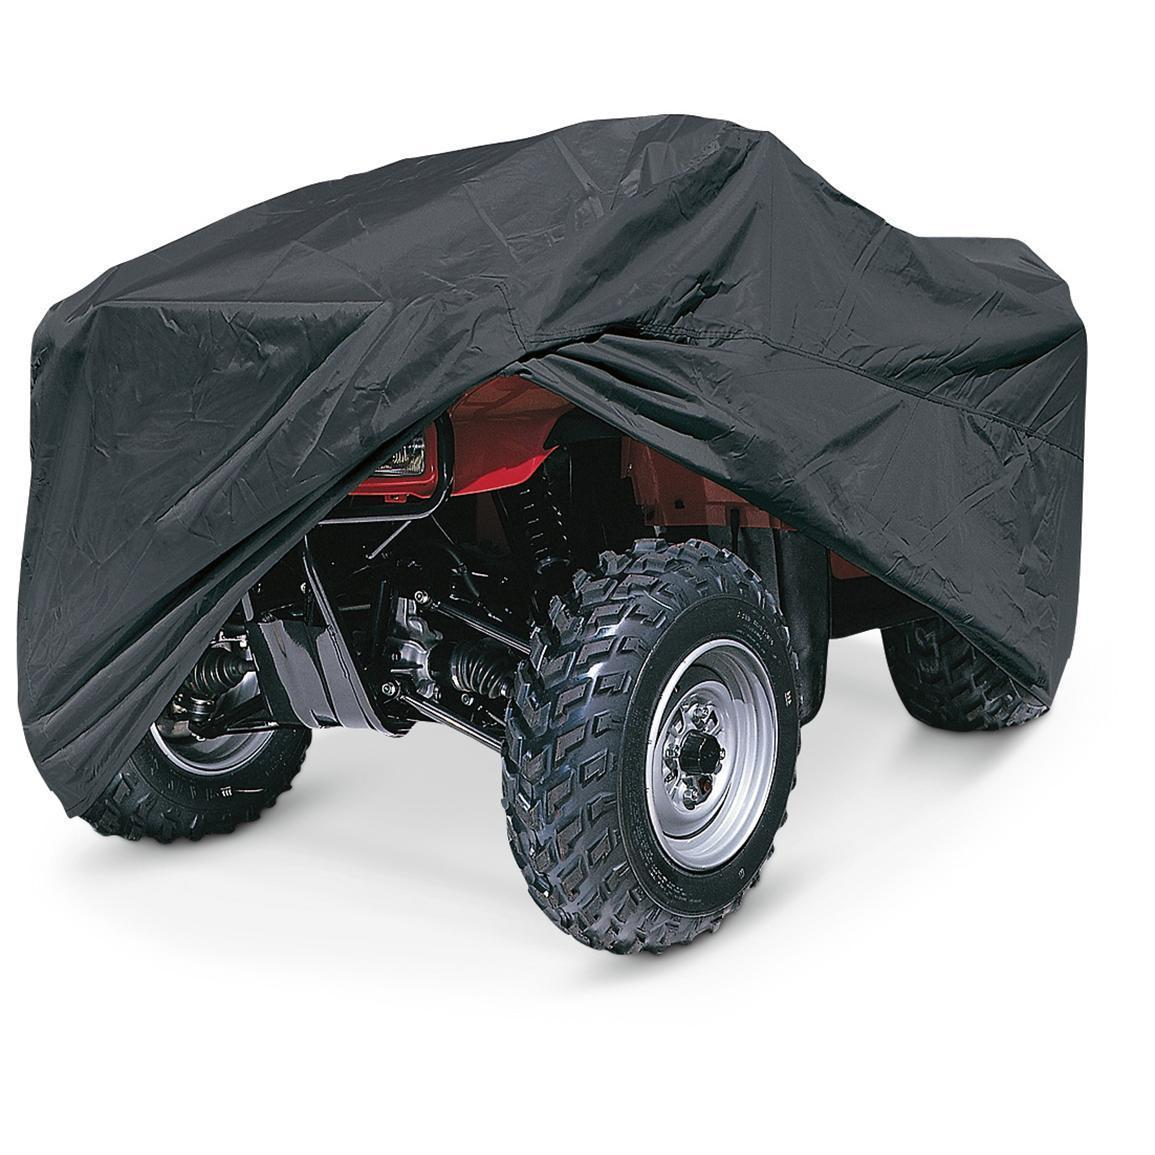 ATV & Motorcycle Covers